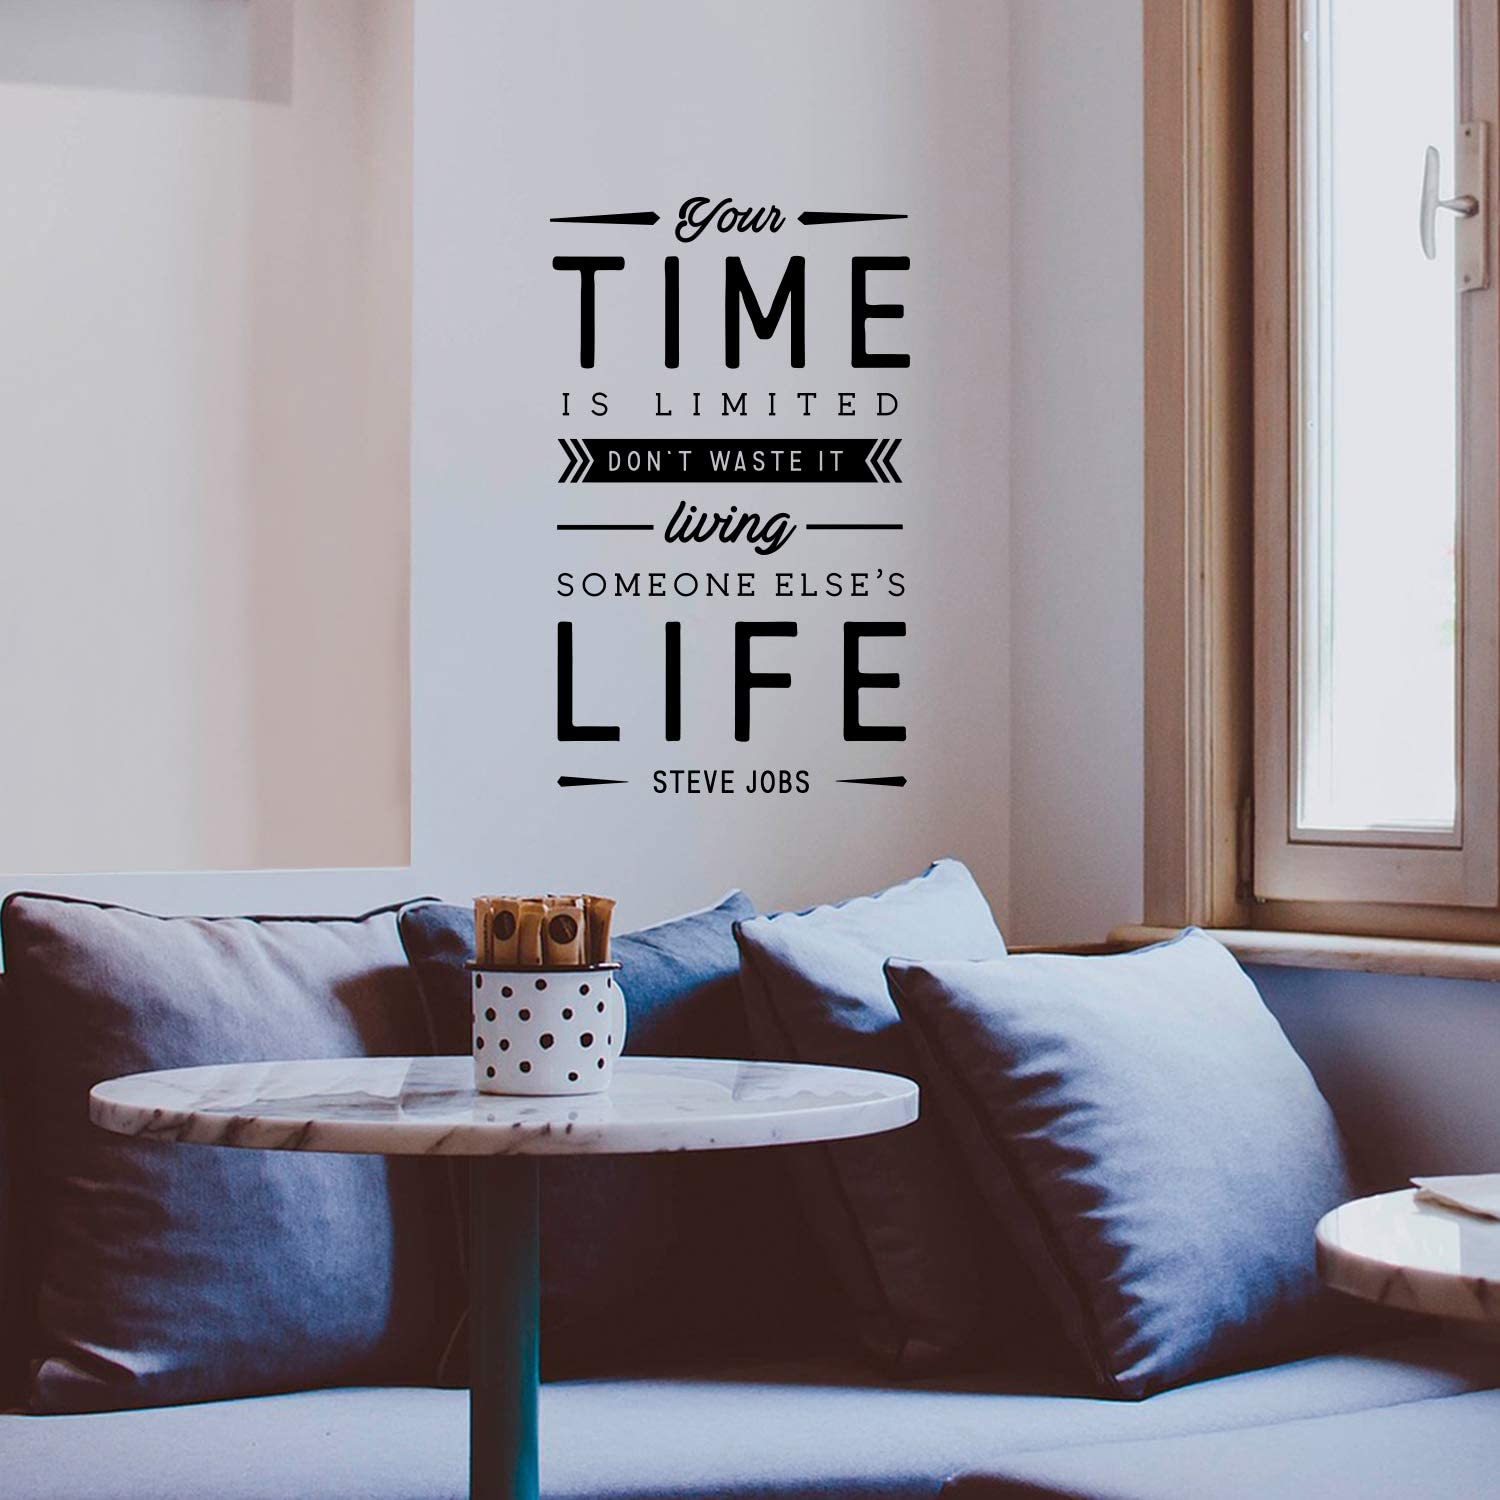 Amazon Com Vinyl Wall Art Decal Your Time Is Limited Don T Waste It 22 5 X 14 Steve Jobs Motivational Quote For Home Bedroom Apartment Living Room Decor Inspirational Workplace